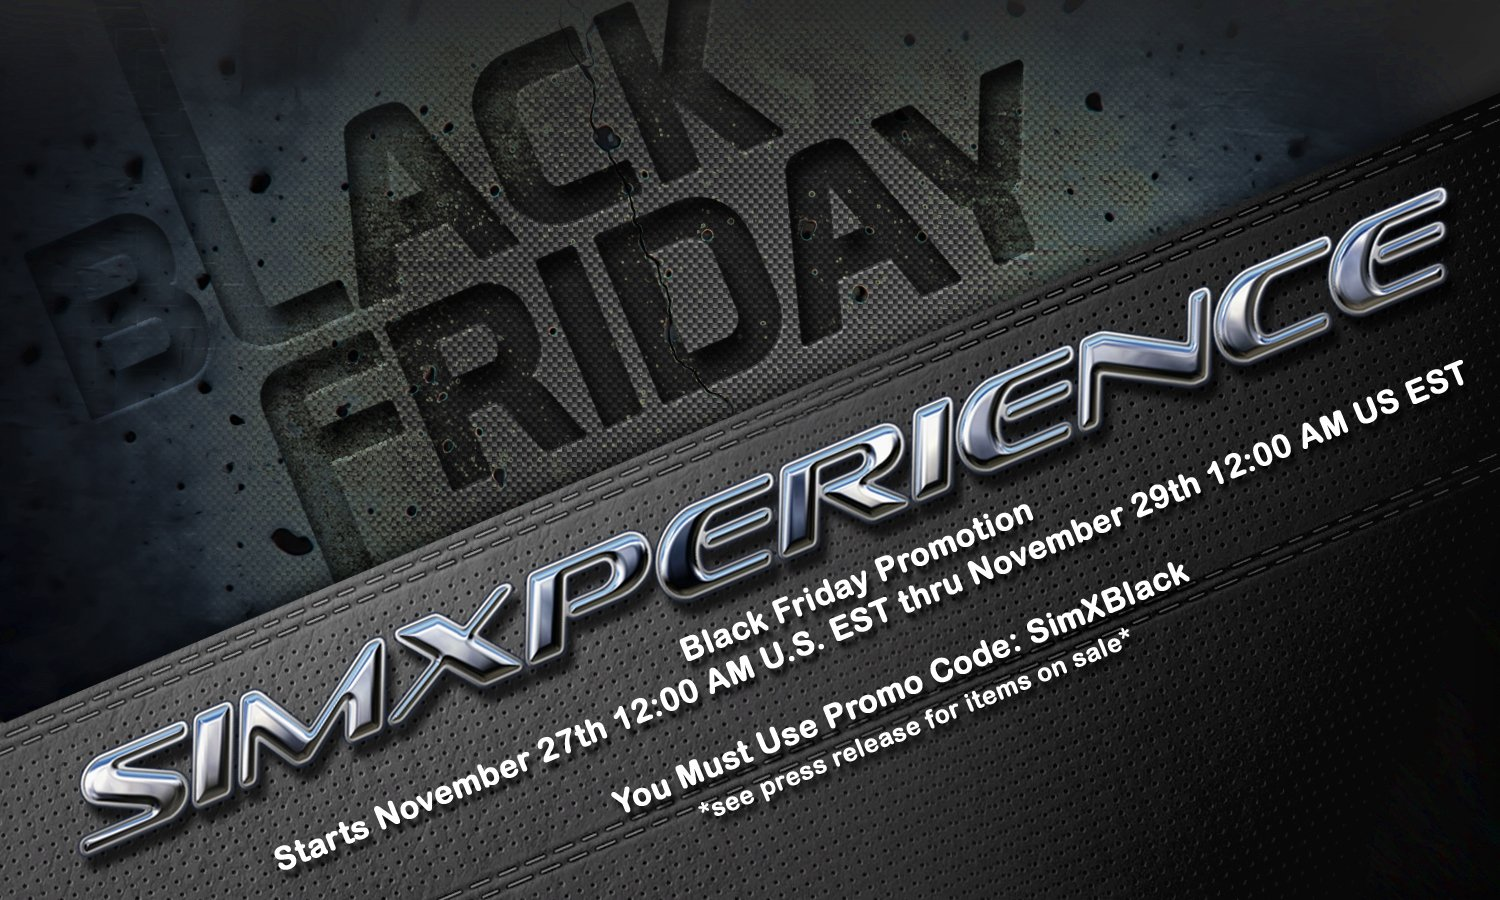 SimXperience Black Friday Promo